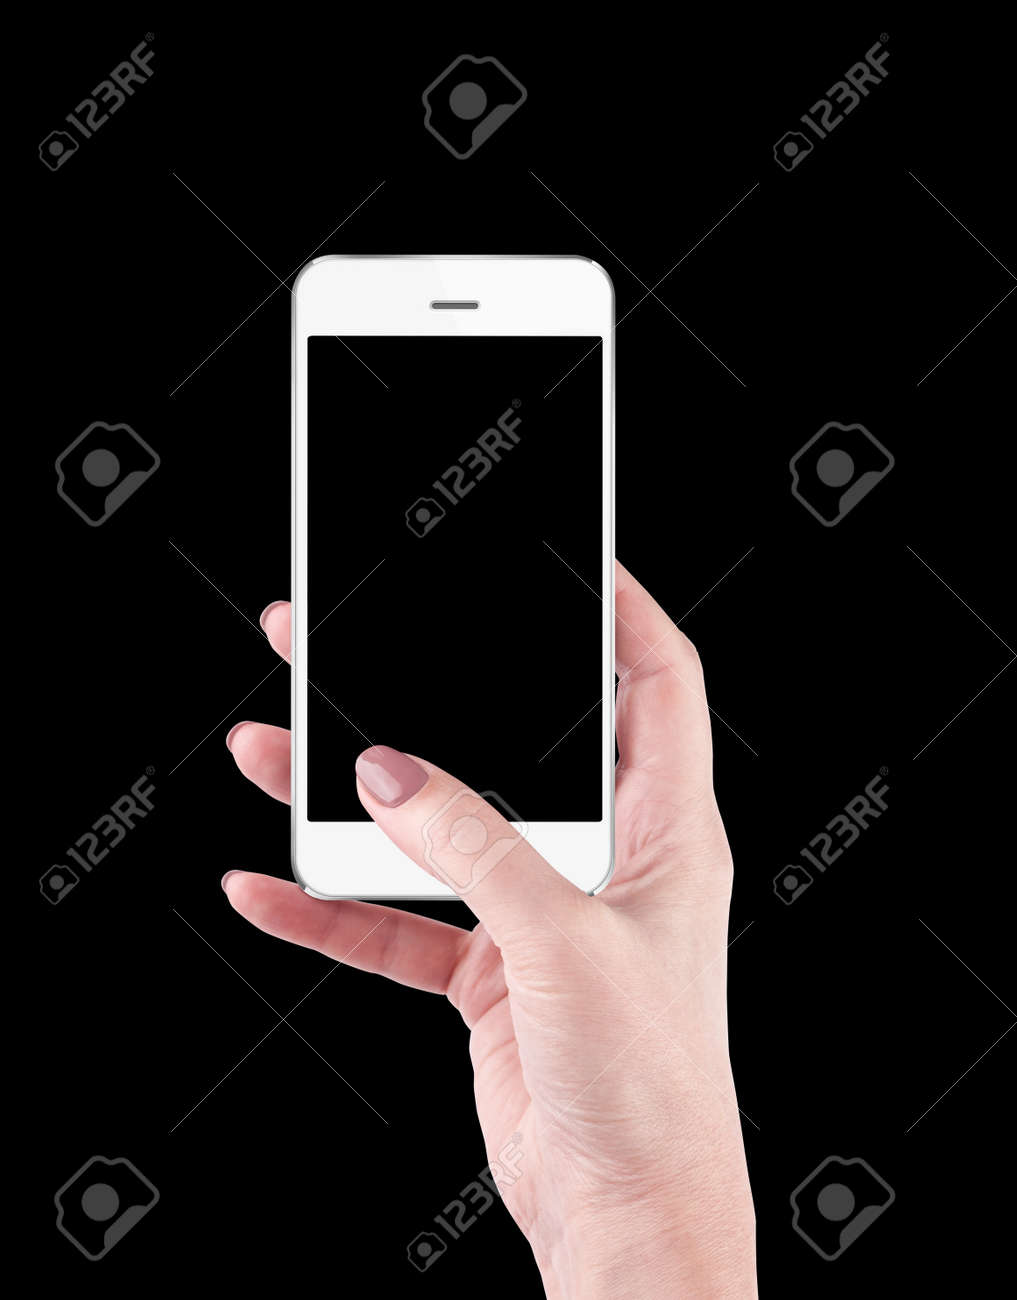 Hand holding and Touching a Smartphone - 72247614